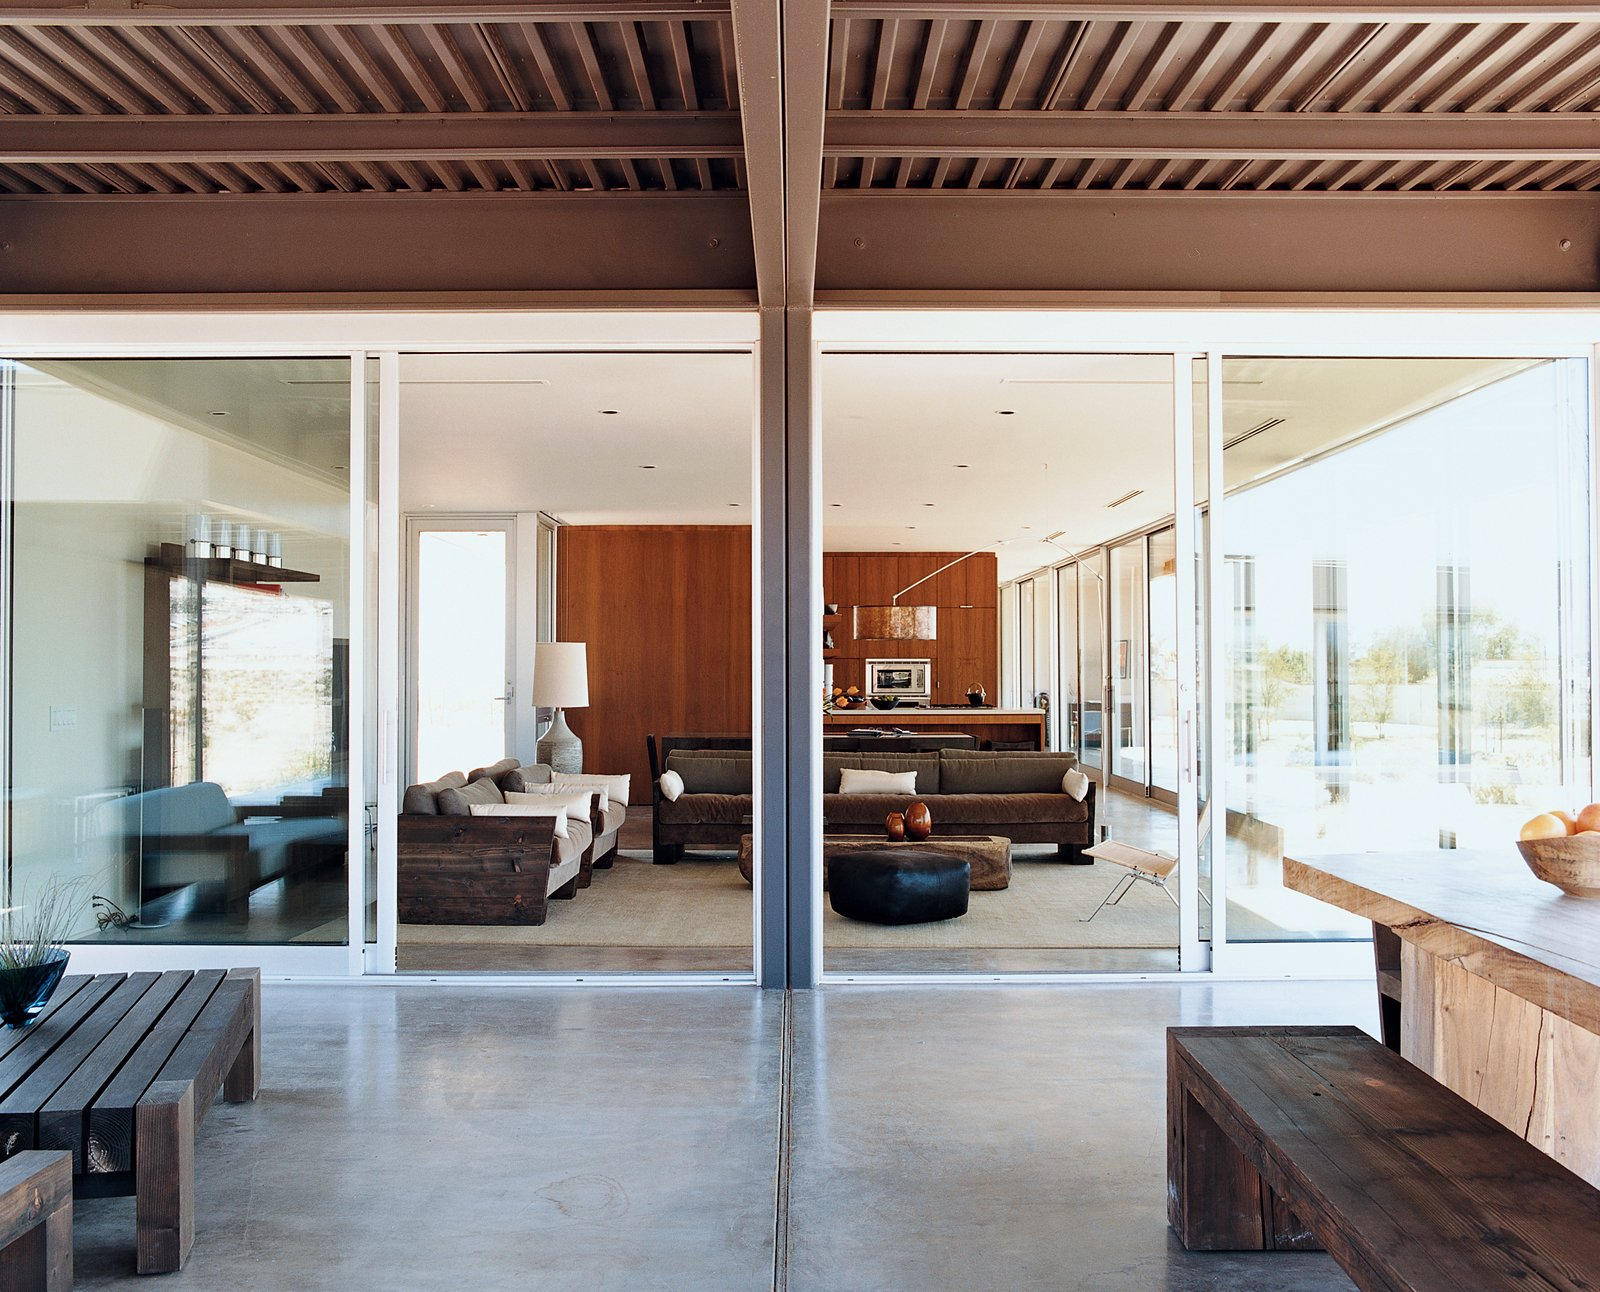 Dining Room and Concrete Floor There are generously proportioned nine-foot-high ceilings throughout the Desert House. Marmol Radziner designed and built the outdoor table and benches from reclaimed Douglas fir.  Photo 8 of 9 in Desert Utopia